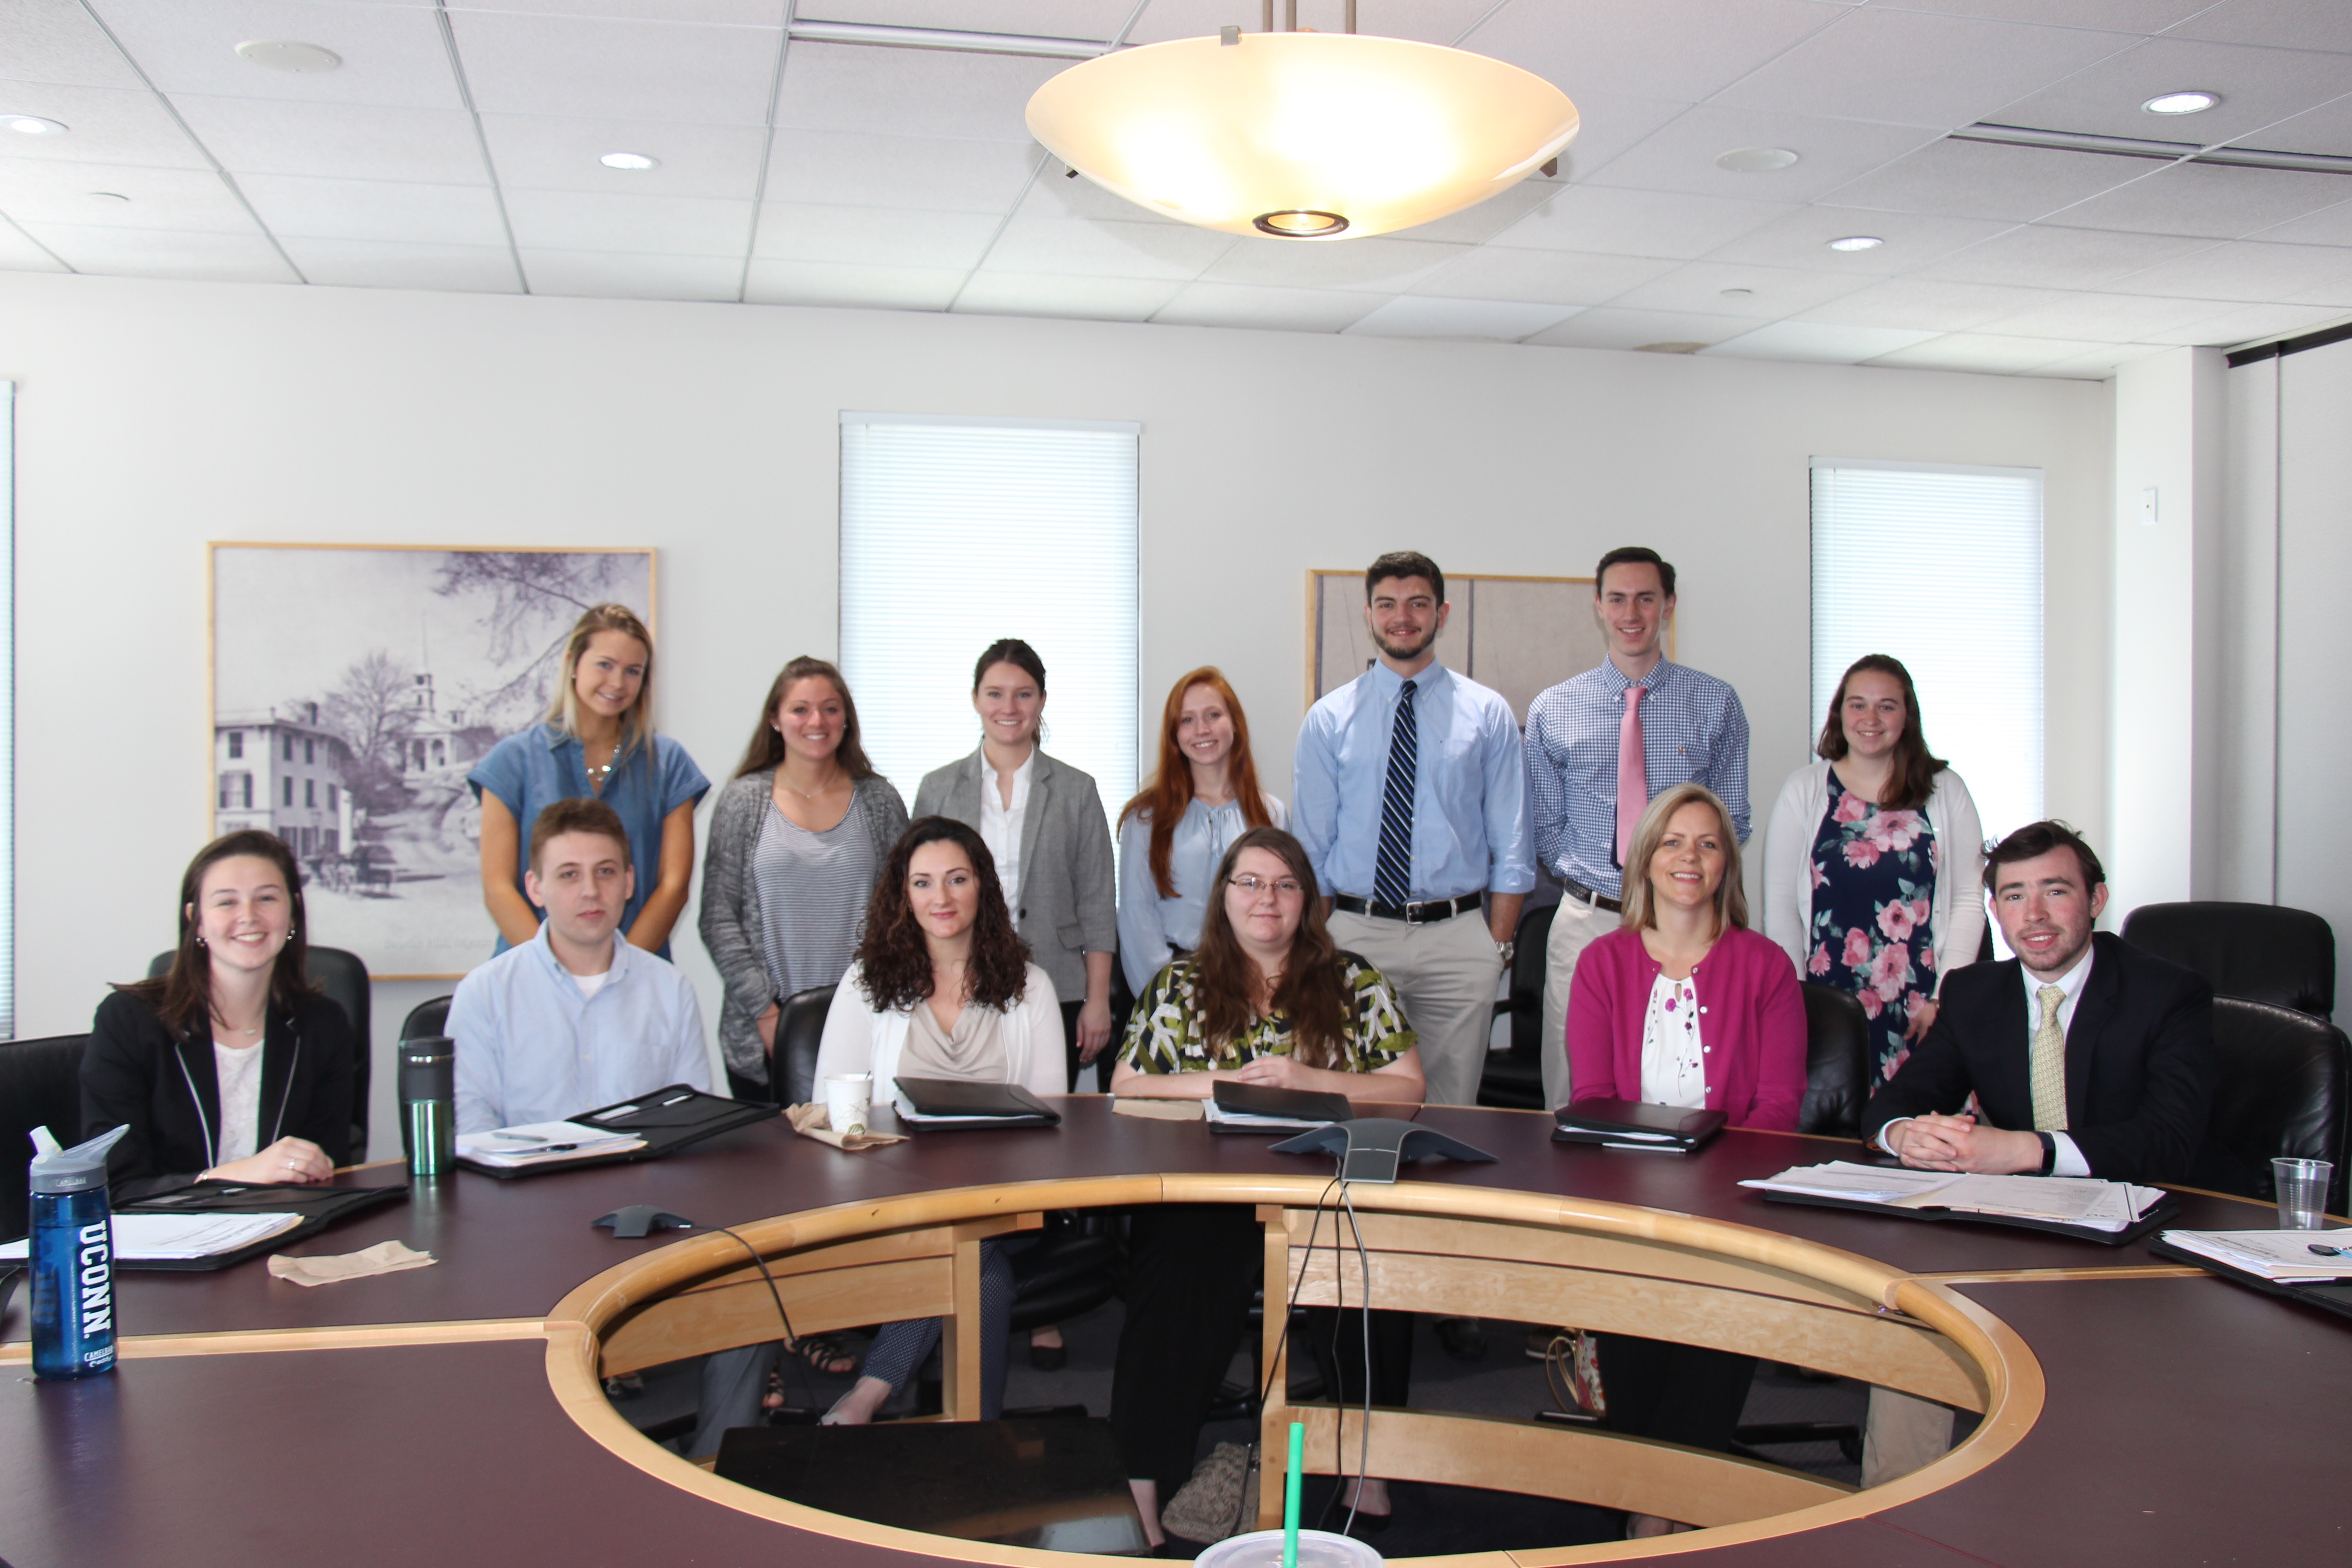 Chelsea Groton Bank Accepting Summer Intern Applications Through March 13